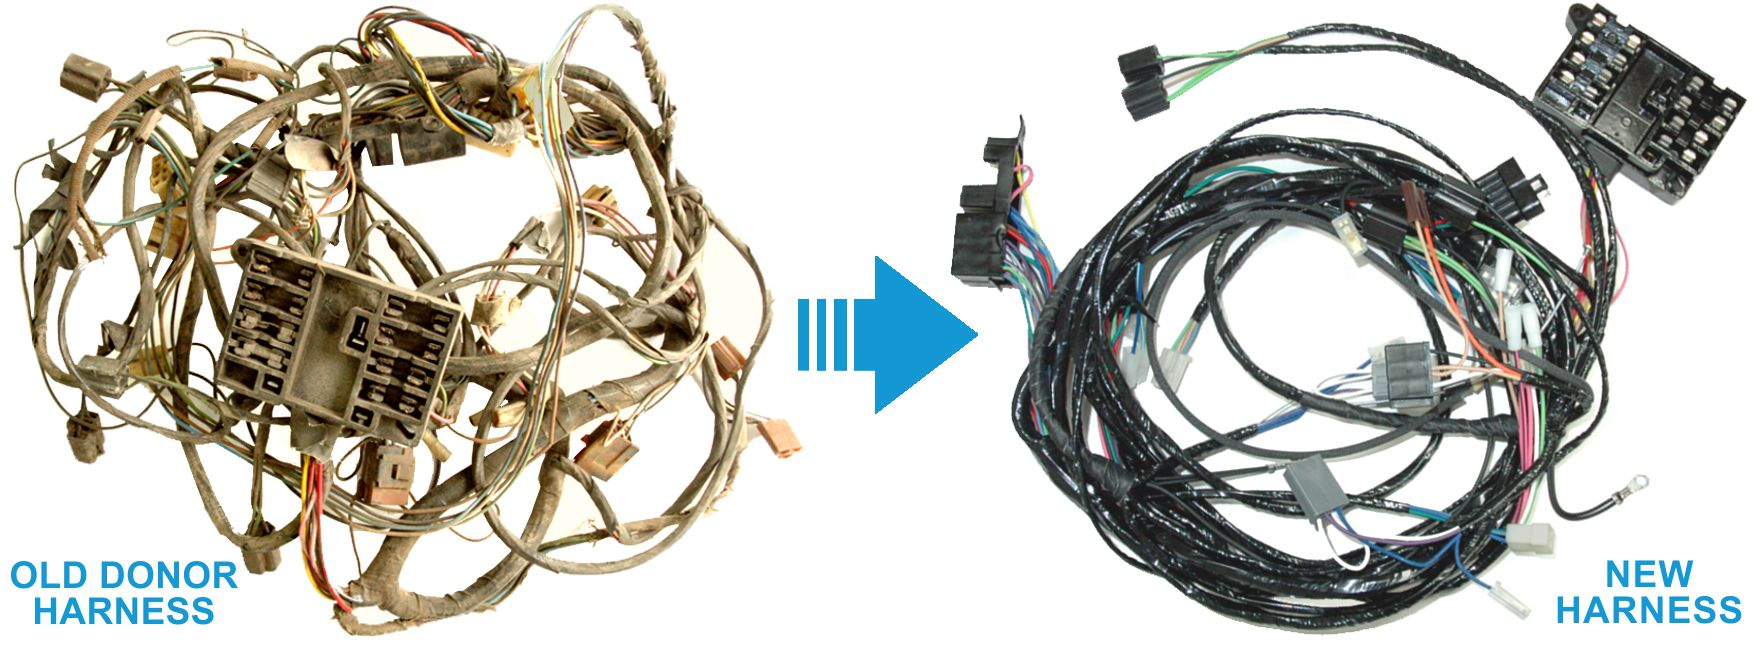 Exact Oem Reproduction Wiring Harnesses For Classic Muscle Cars Electric Wire Harness Donor